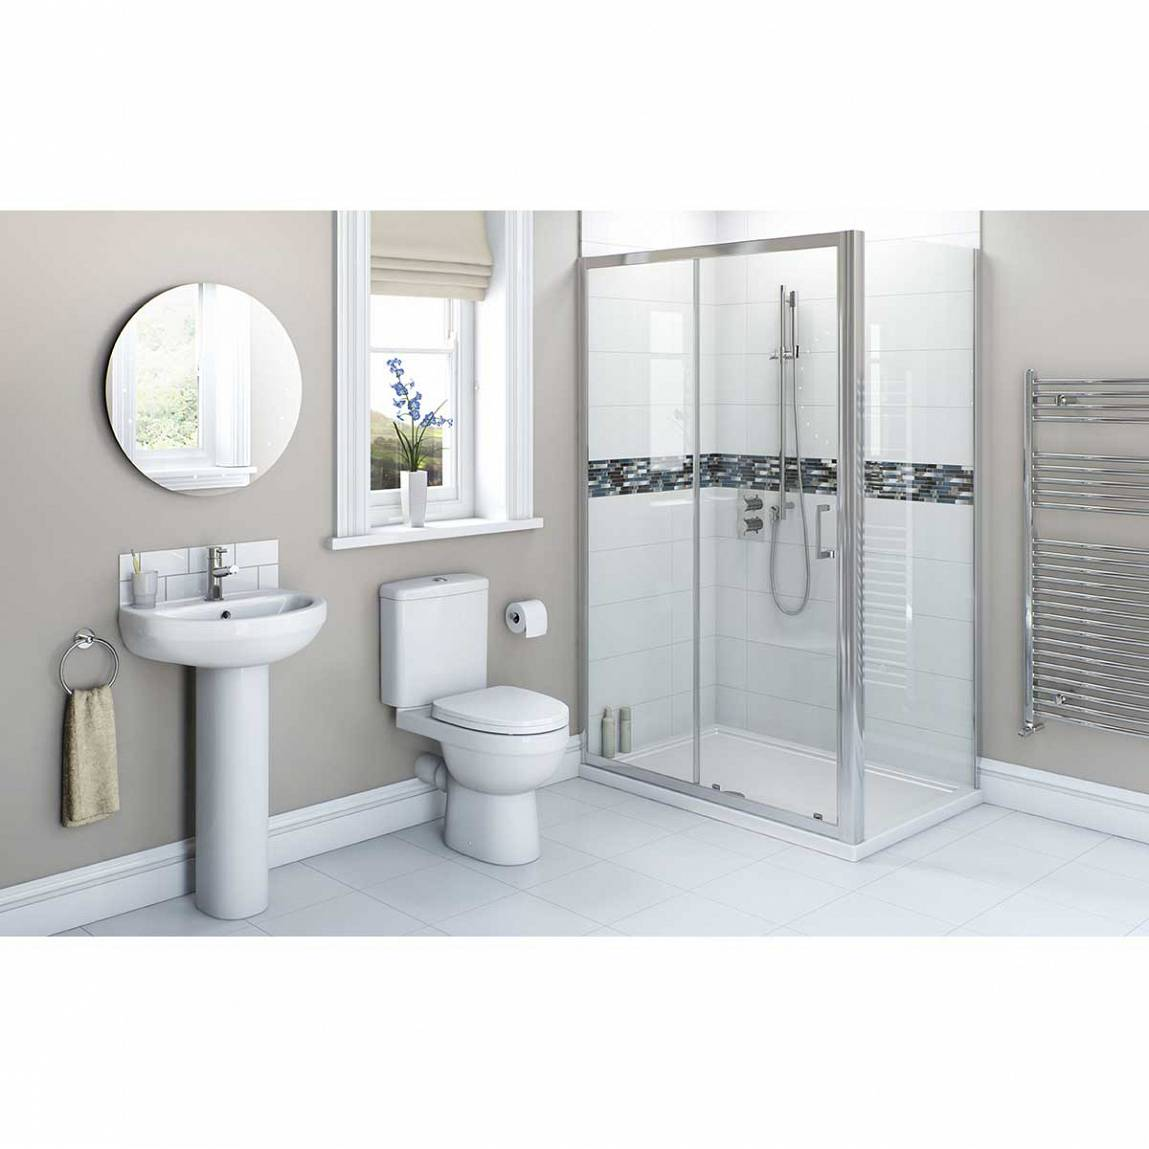 Image of Energy Bathroom set with 1600x800 Sliding Enclosure & Tray